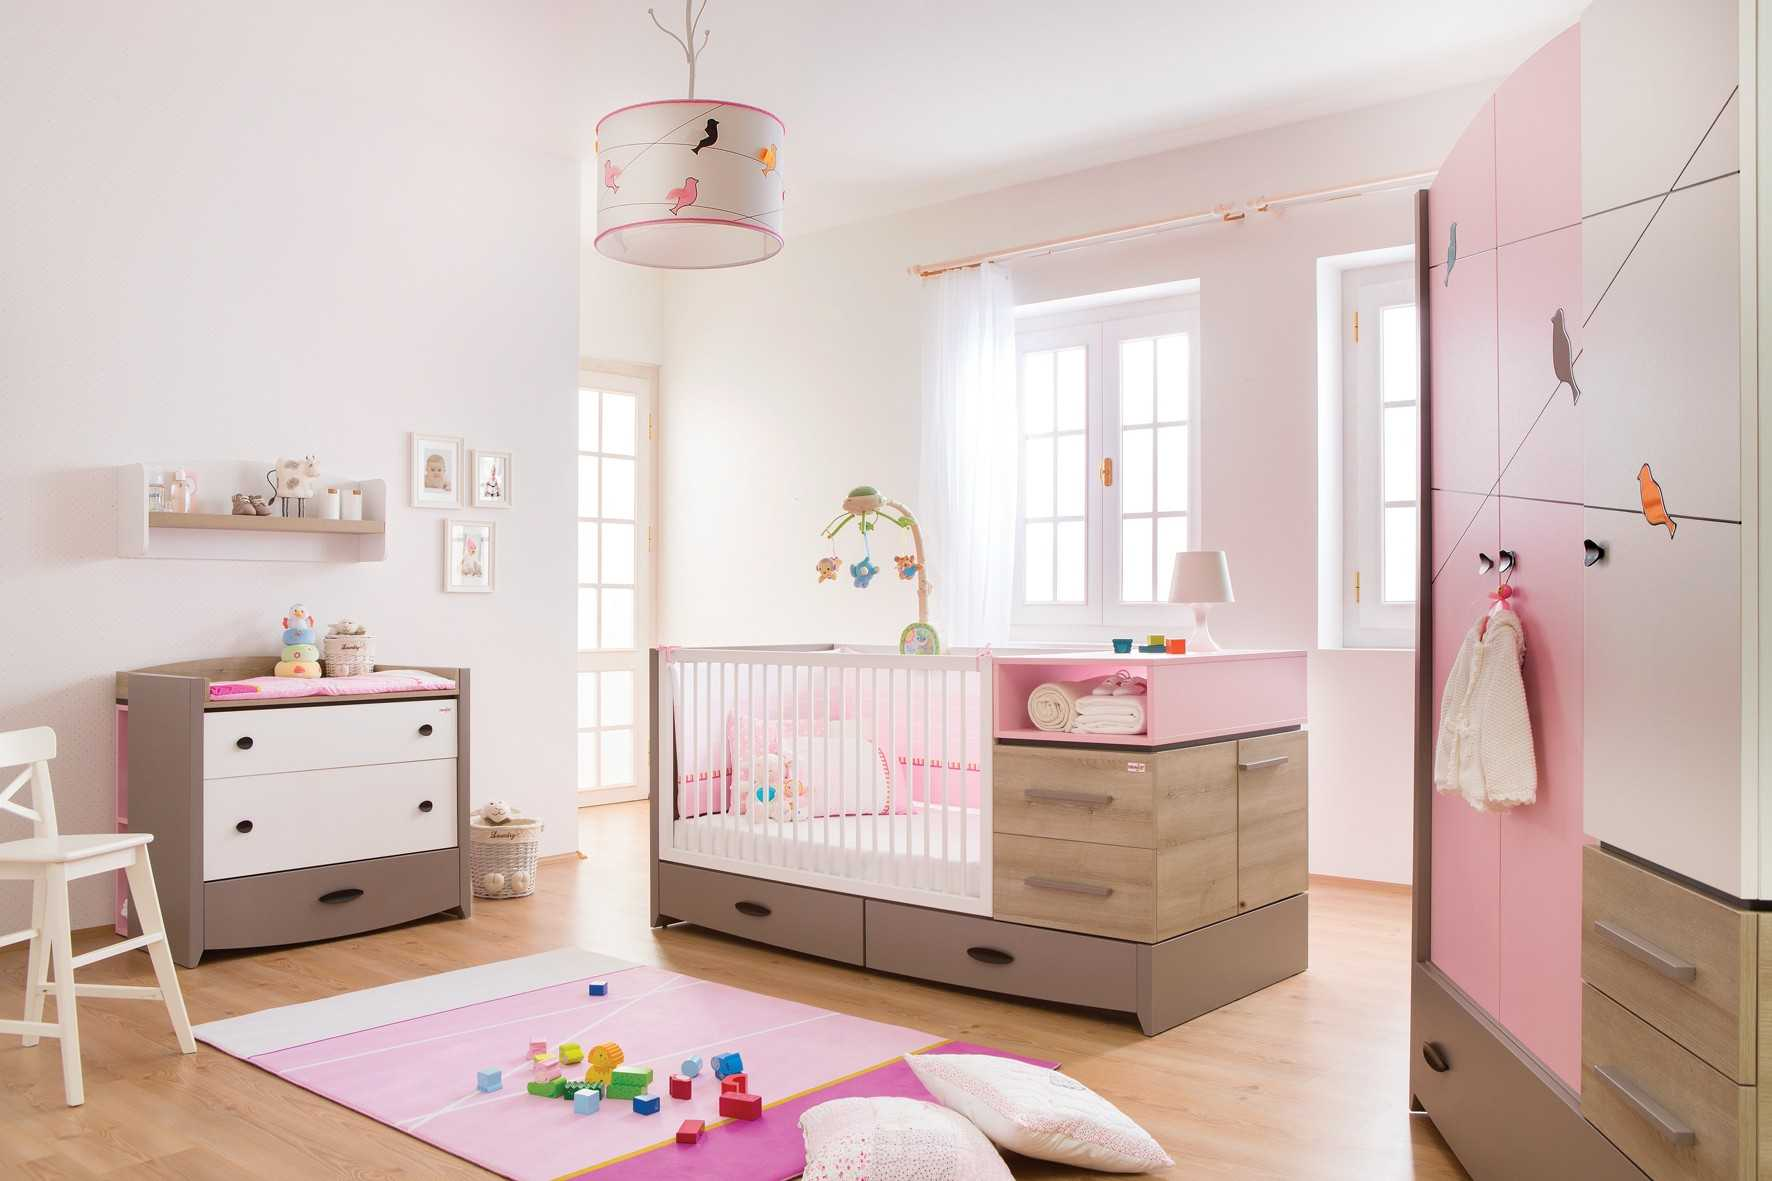 Baby room furniture sets Baby room furniture sets cheap pictures bedroom Raya picture girl white JGLGRJY